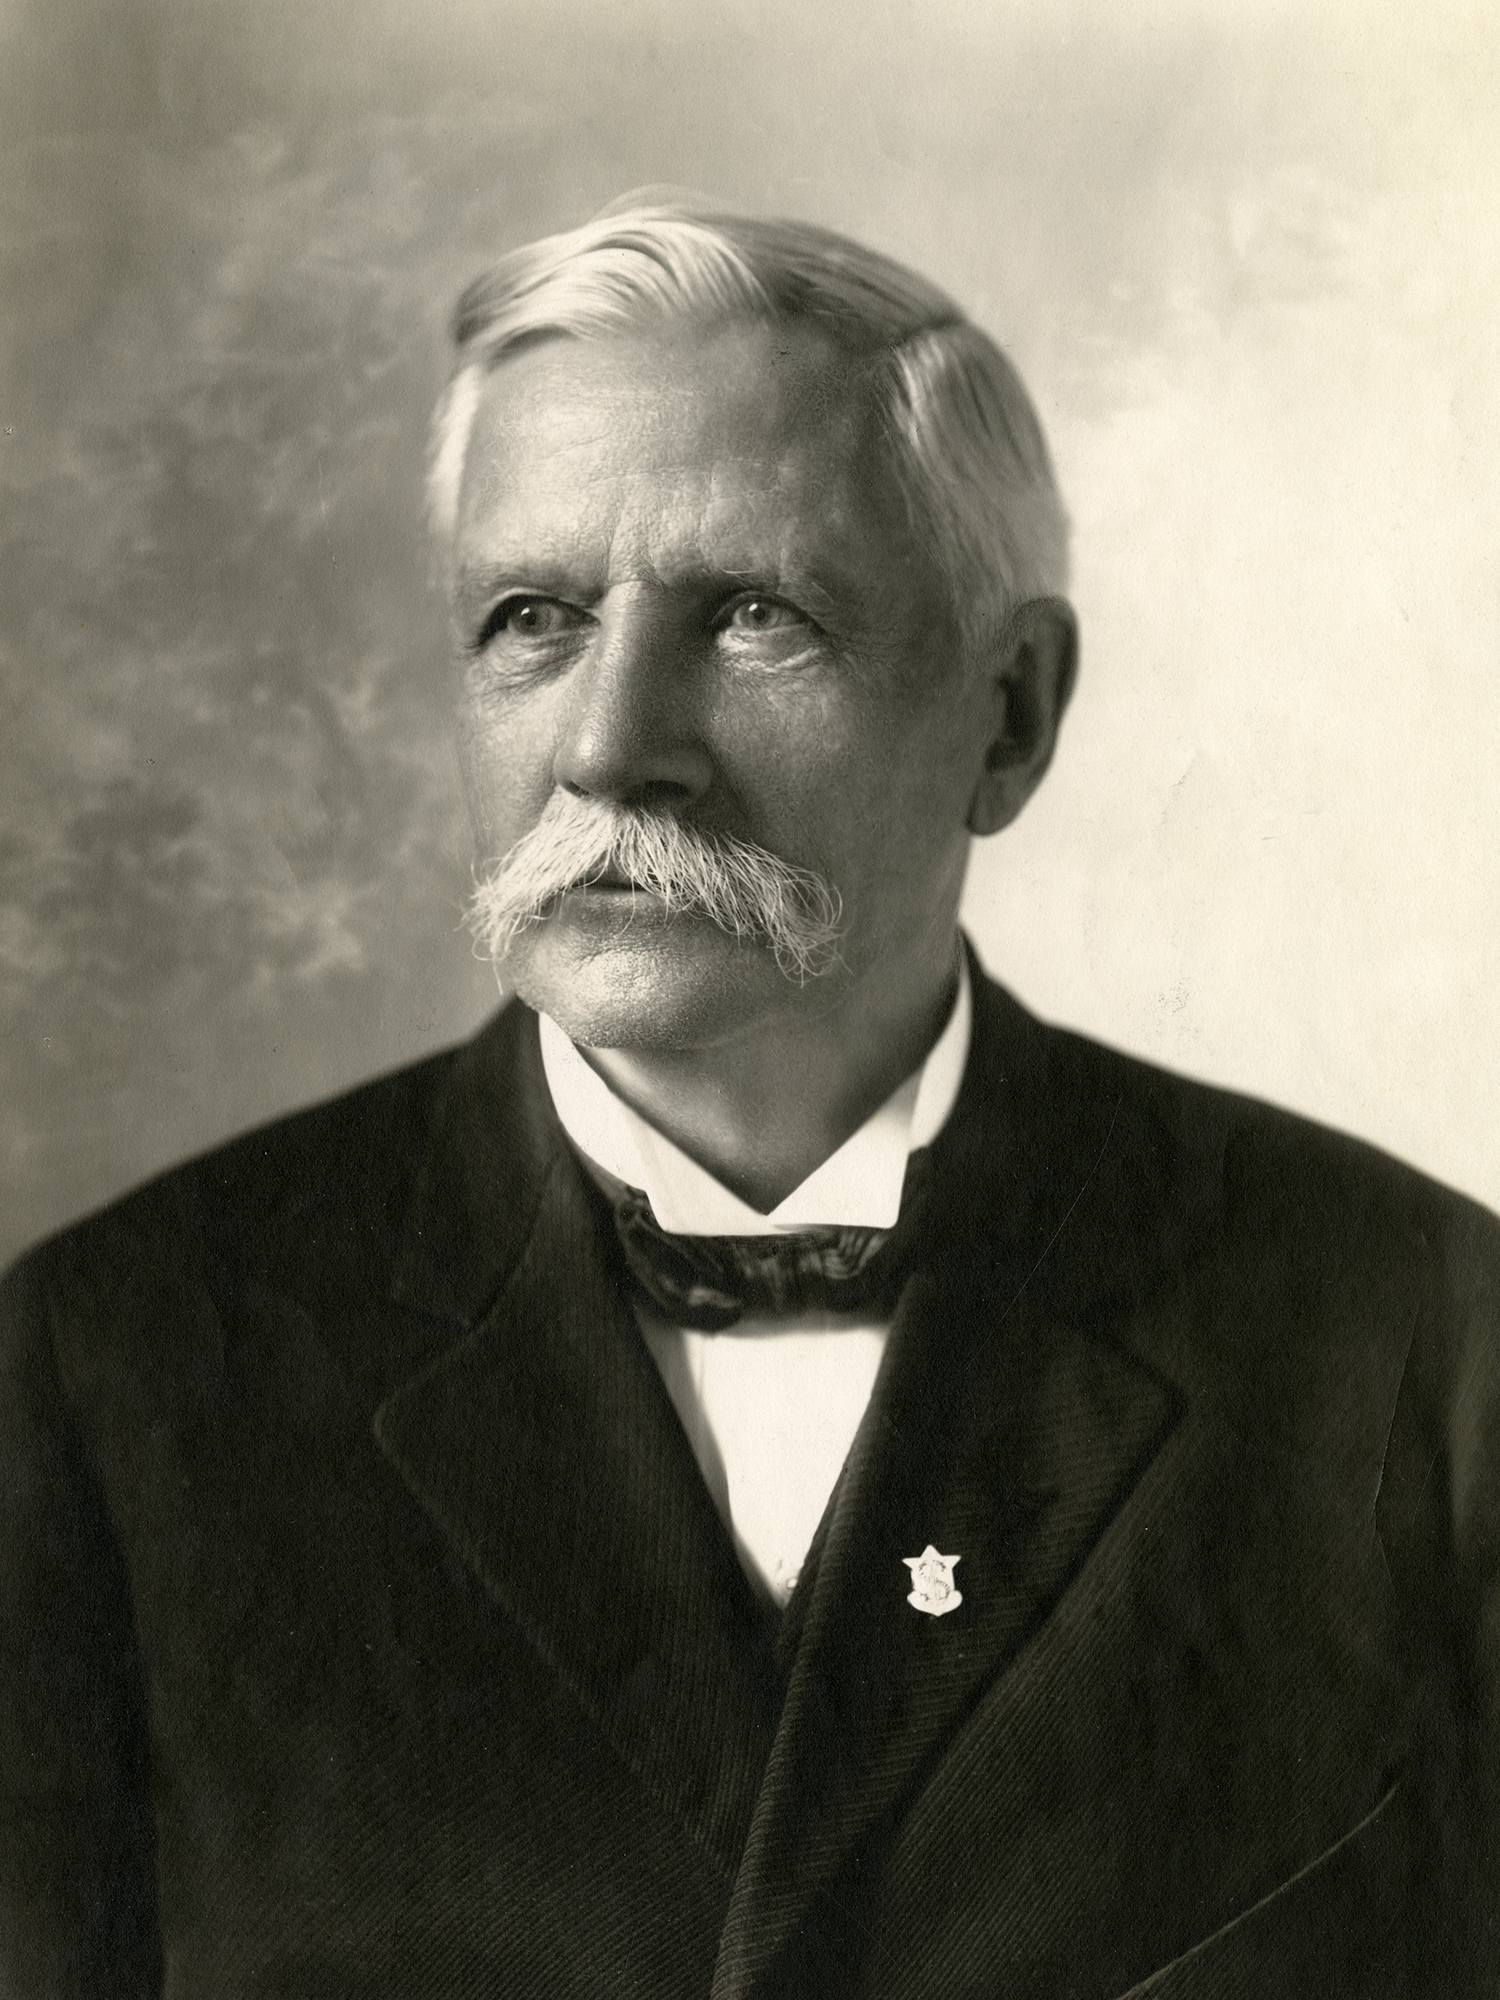 Samuel C. Johnson, first generation leader of American company, SC Johnson